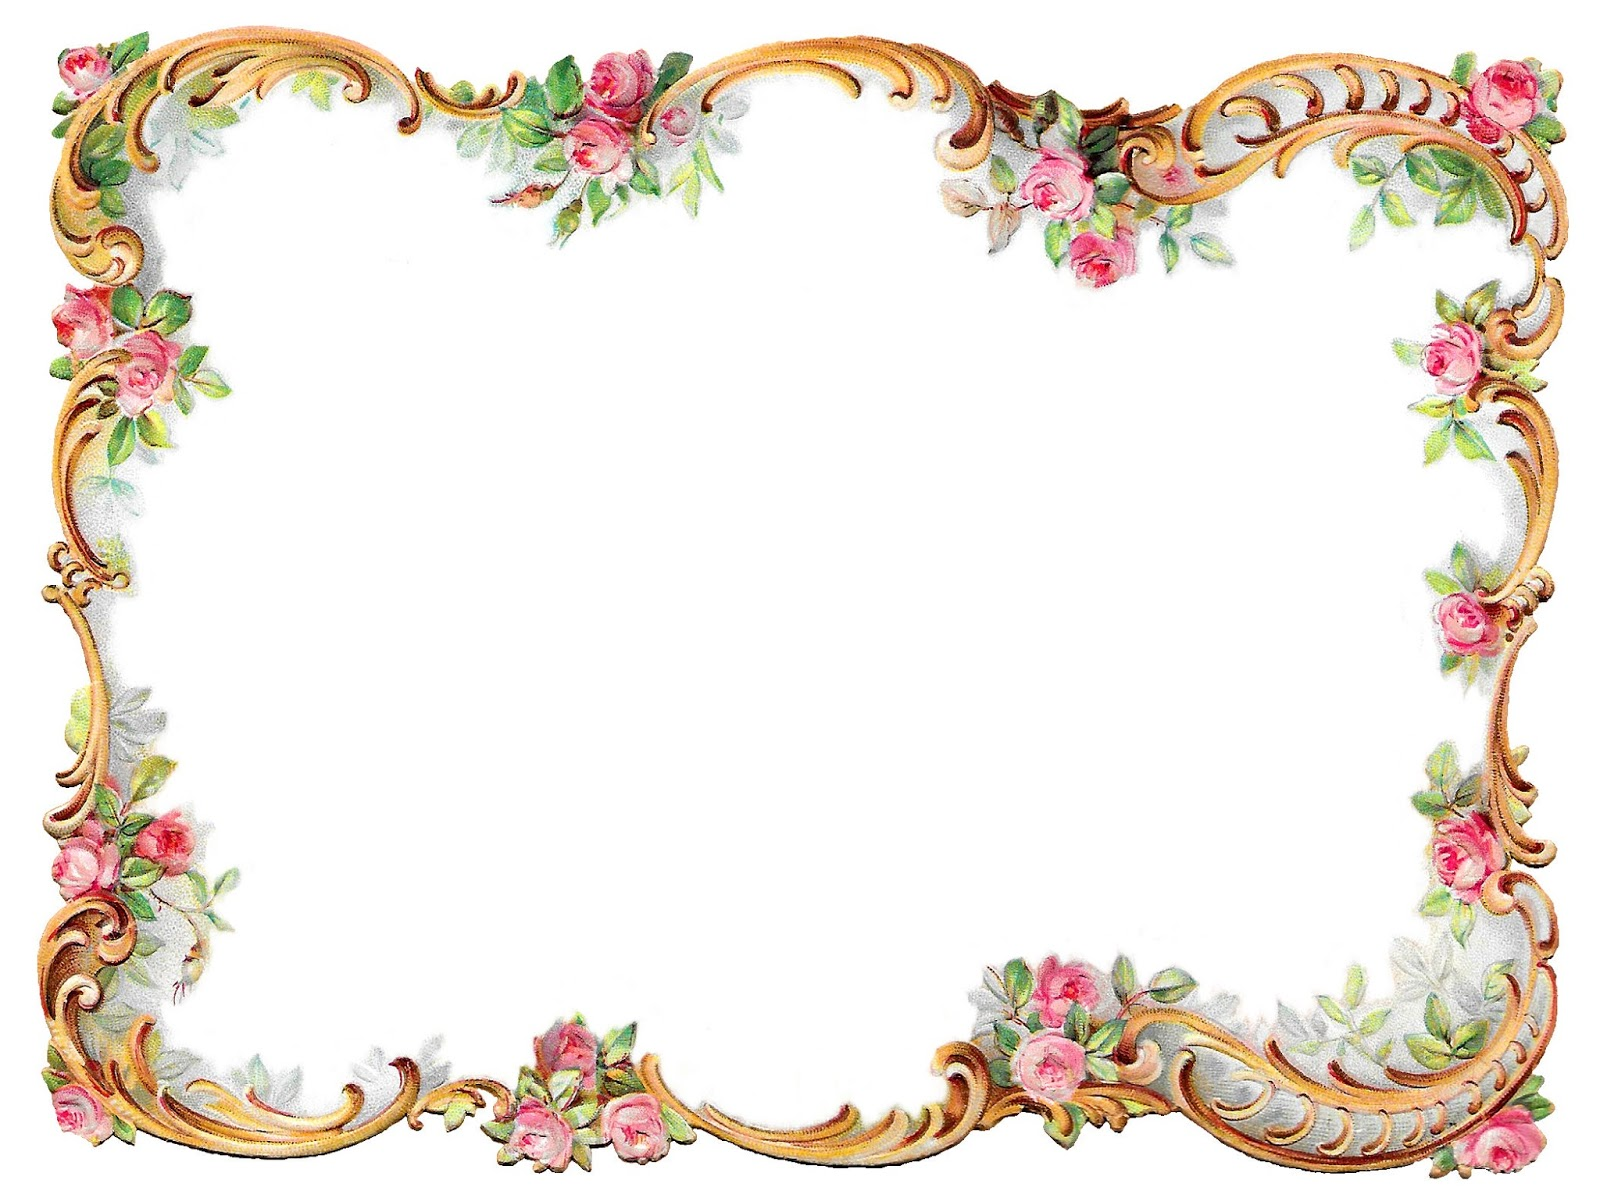 Antique Images Royalty Free Flower Frame Pink Rose Shabby Chic